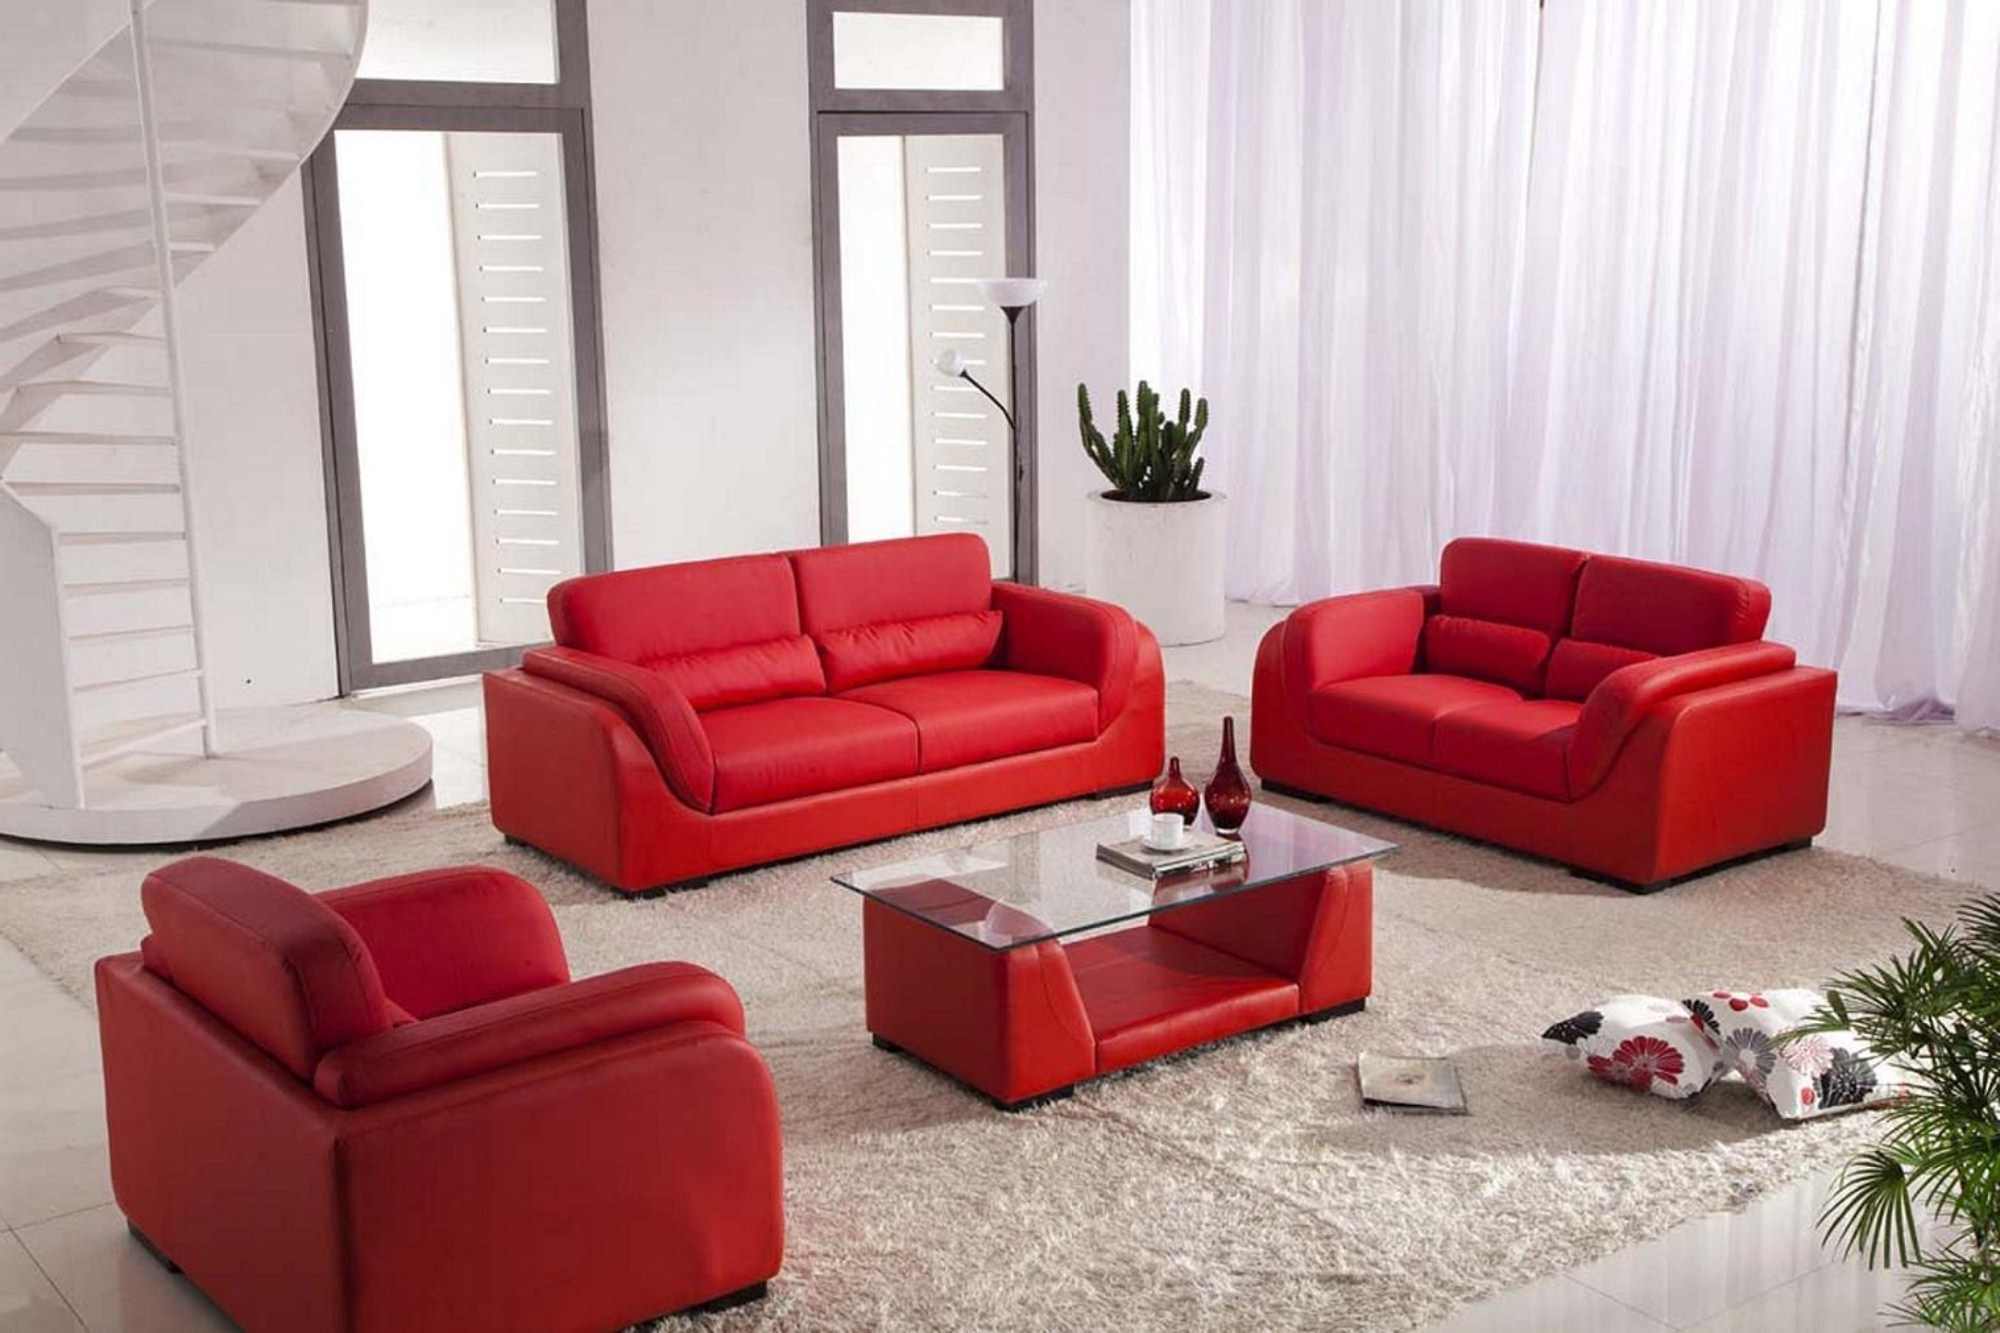 Most Popular Living Room Attractive Ideas With Red Leather Sofa And Glass Table Regarding Red Leather Couches For Living Room (View 15 of 15)